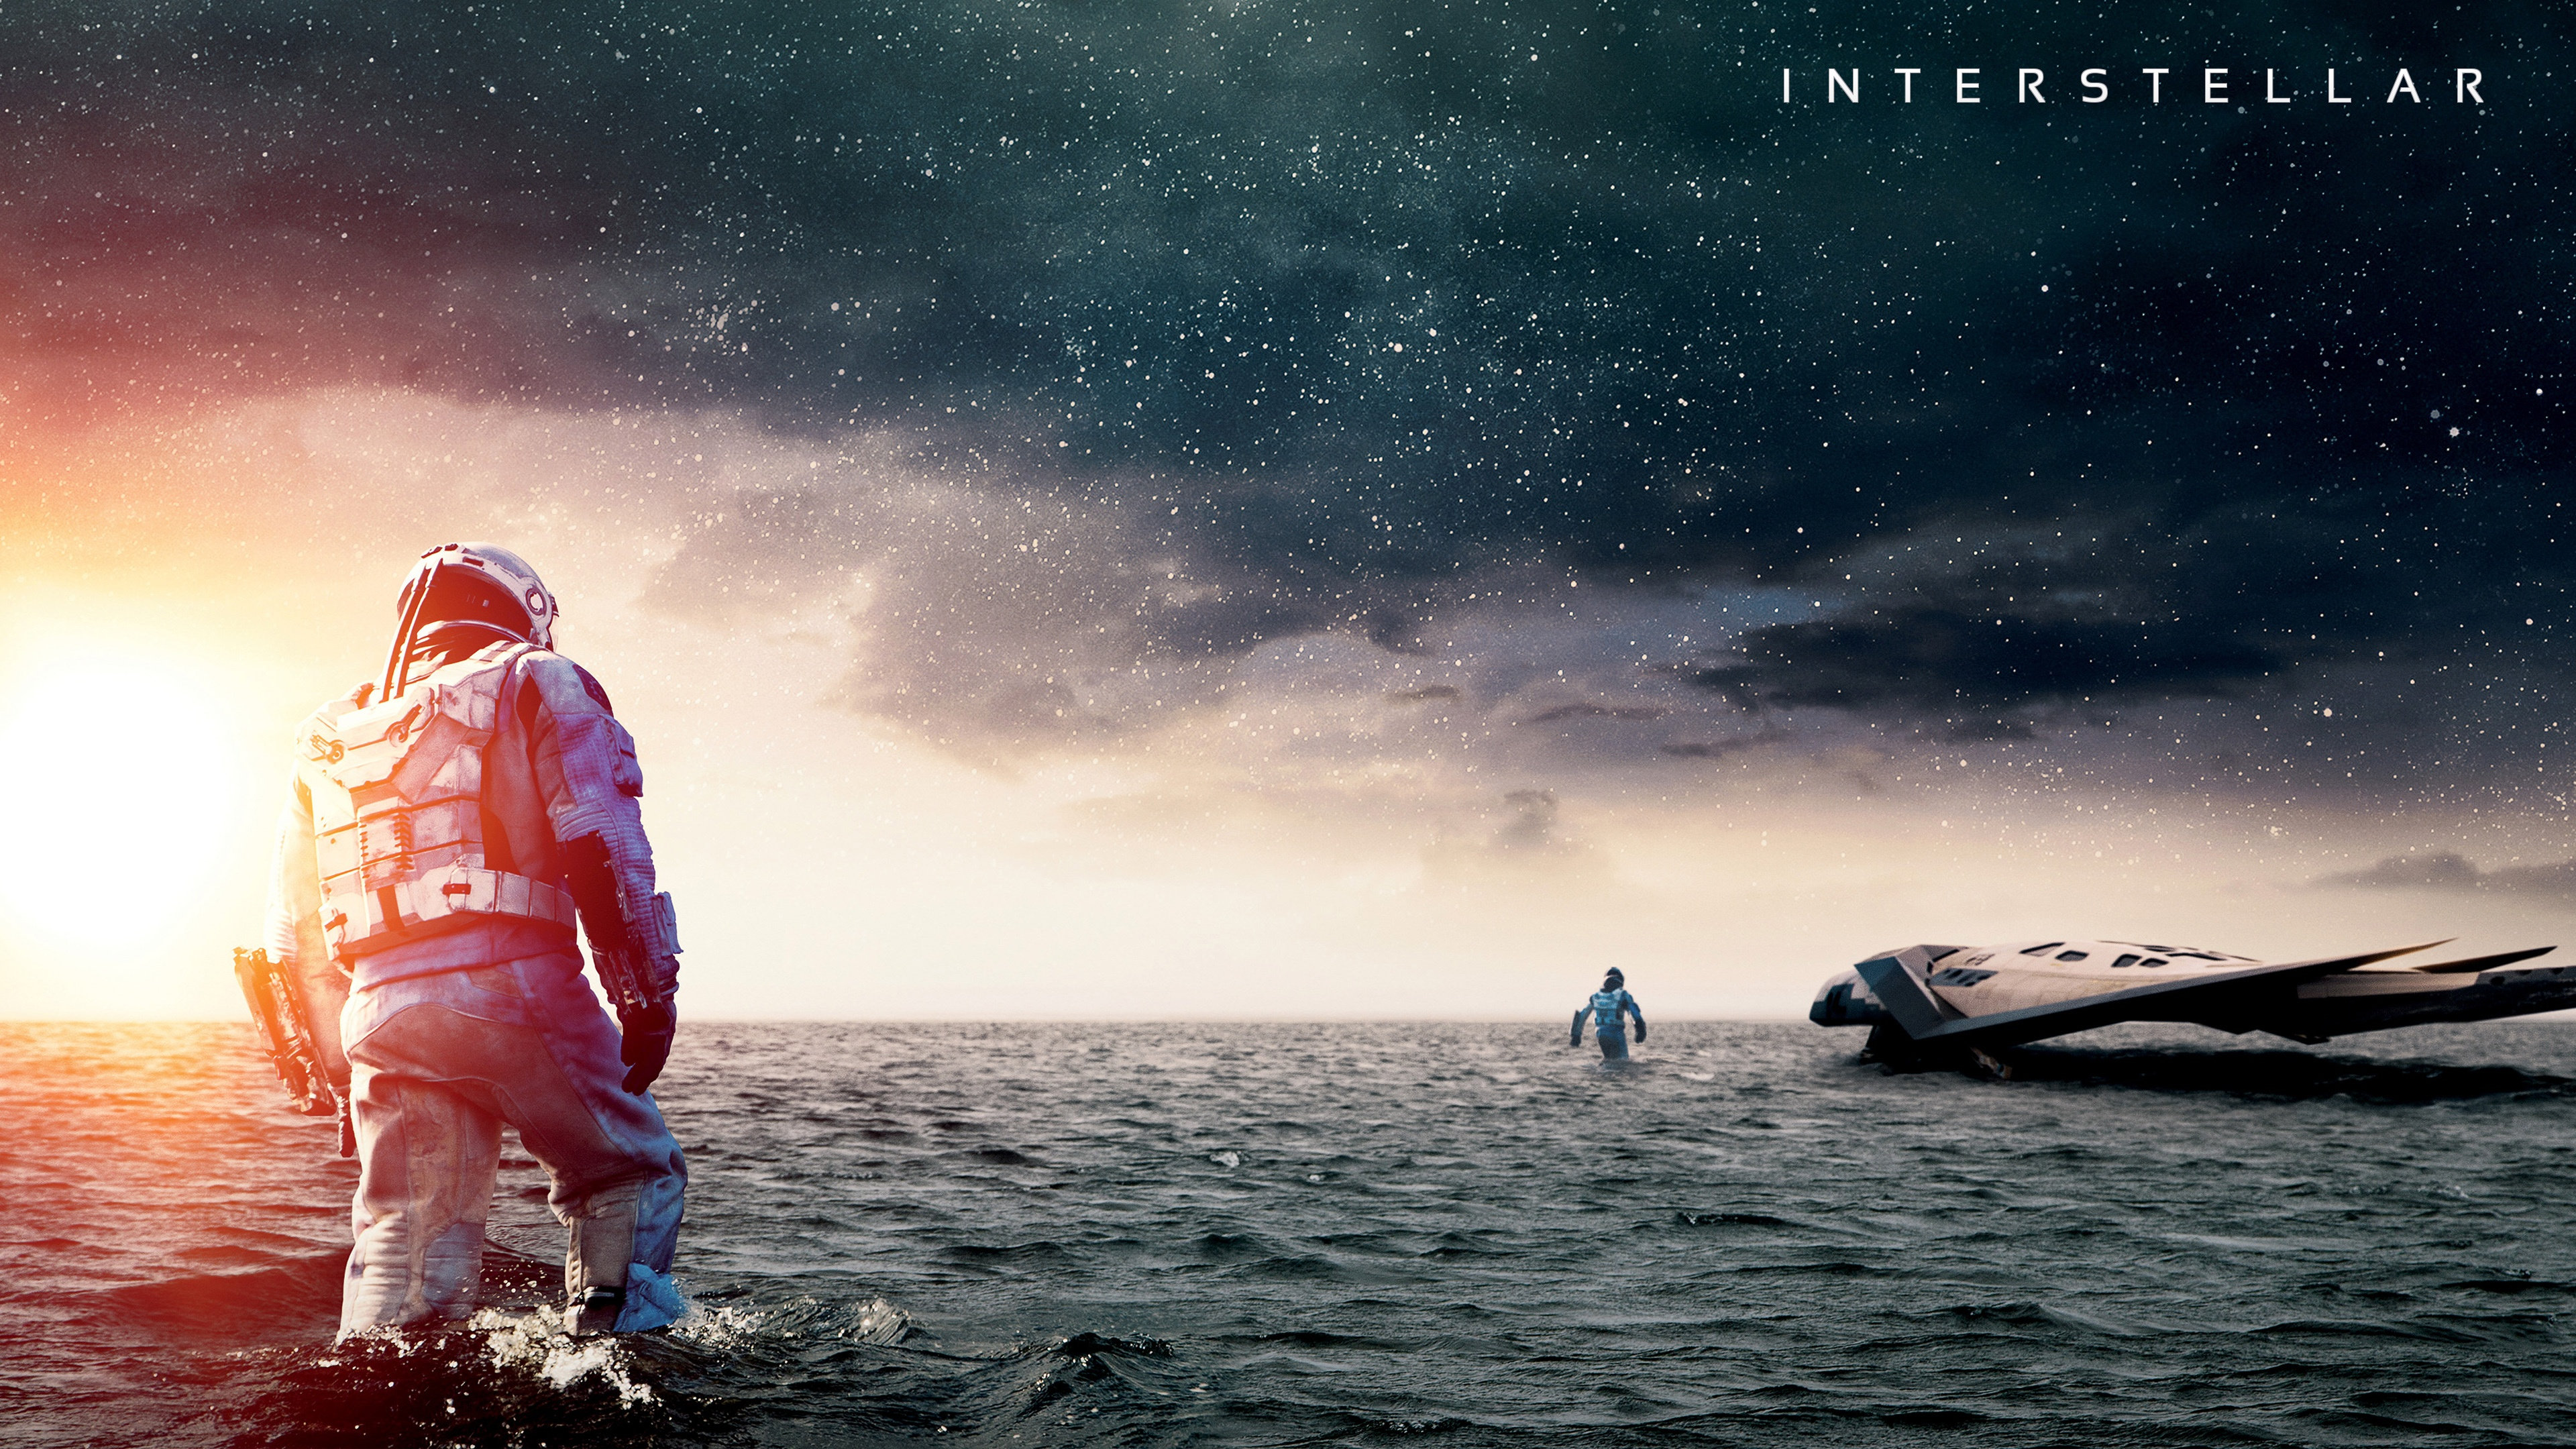 Film Interstellar, pembuka wacana | Interstellar